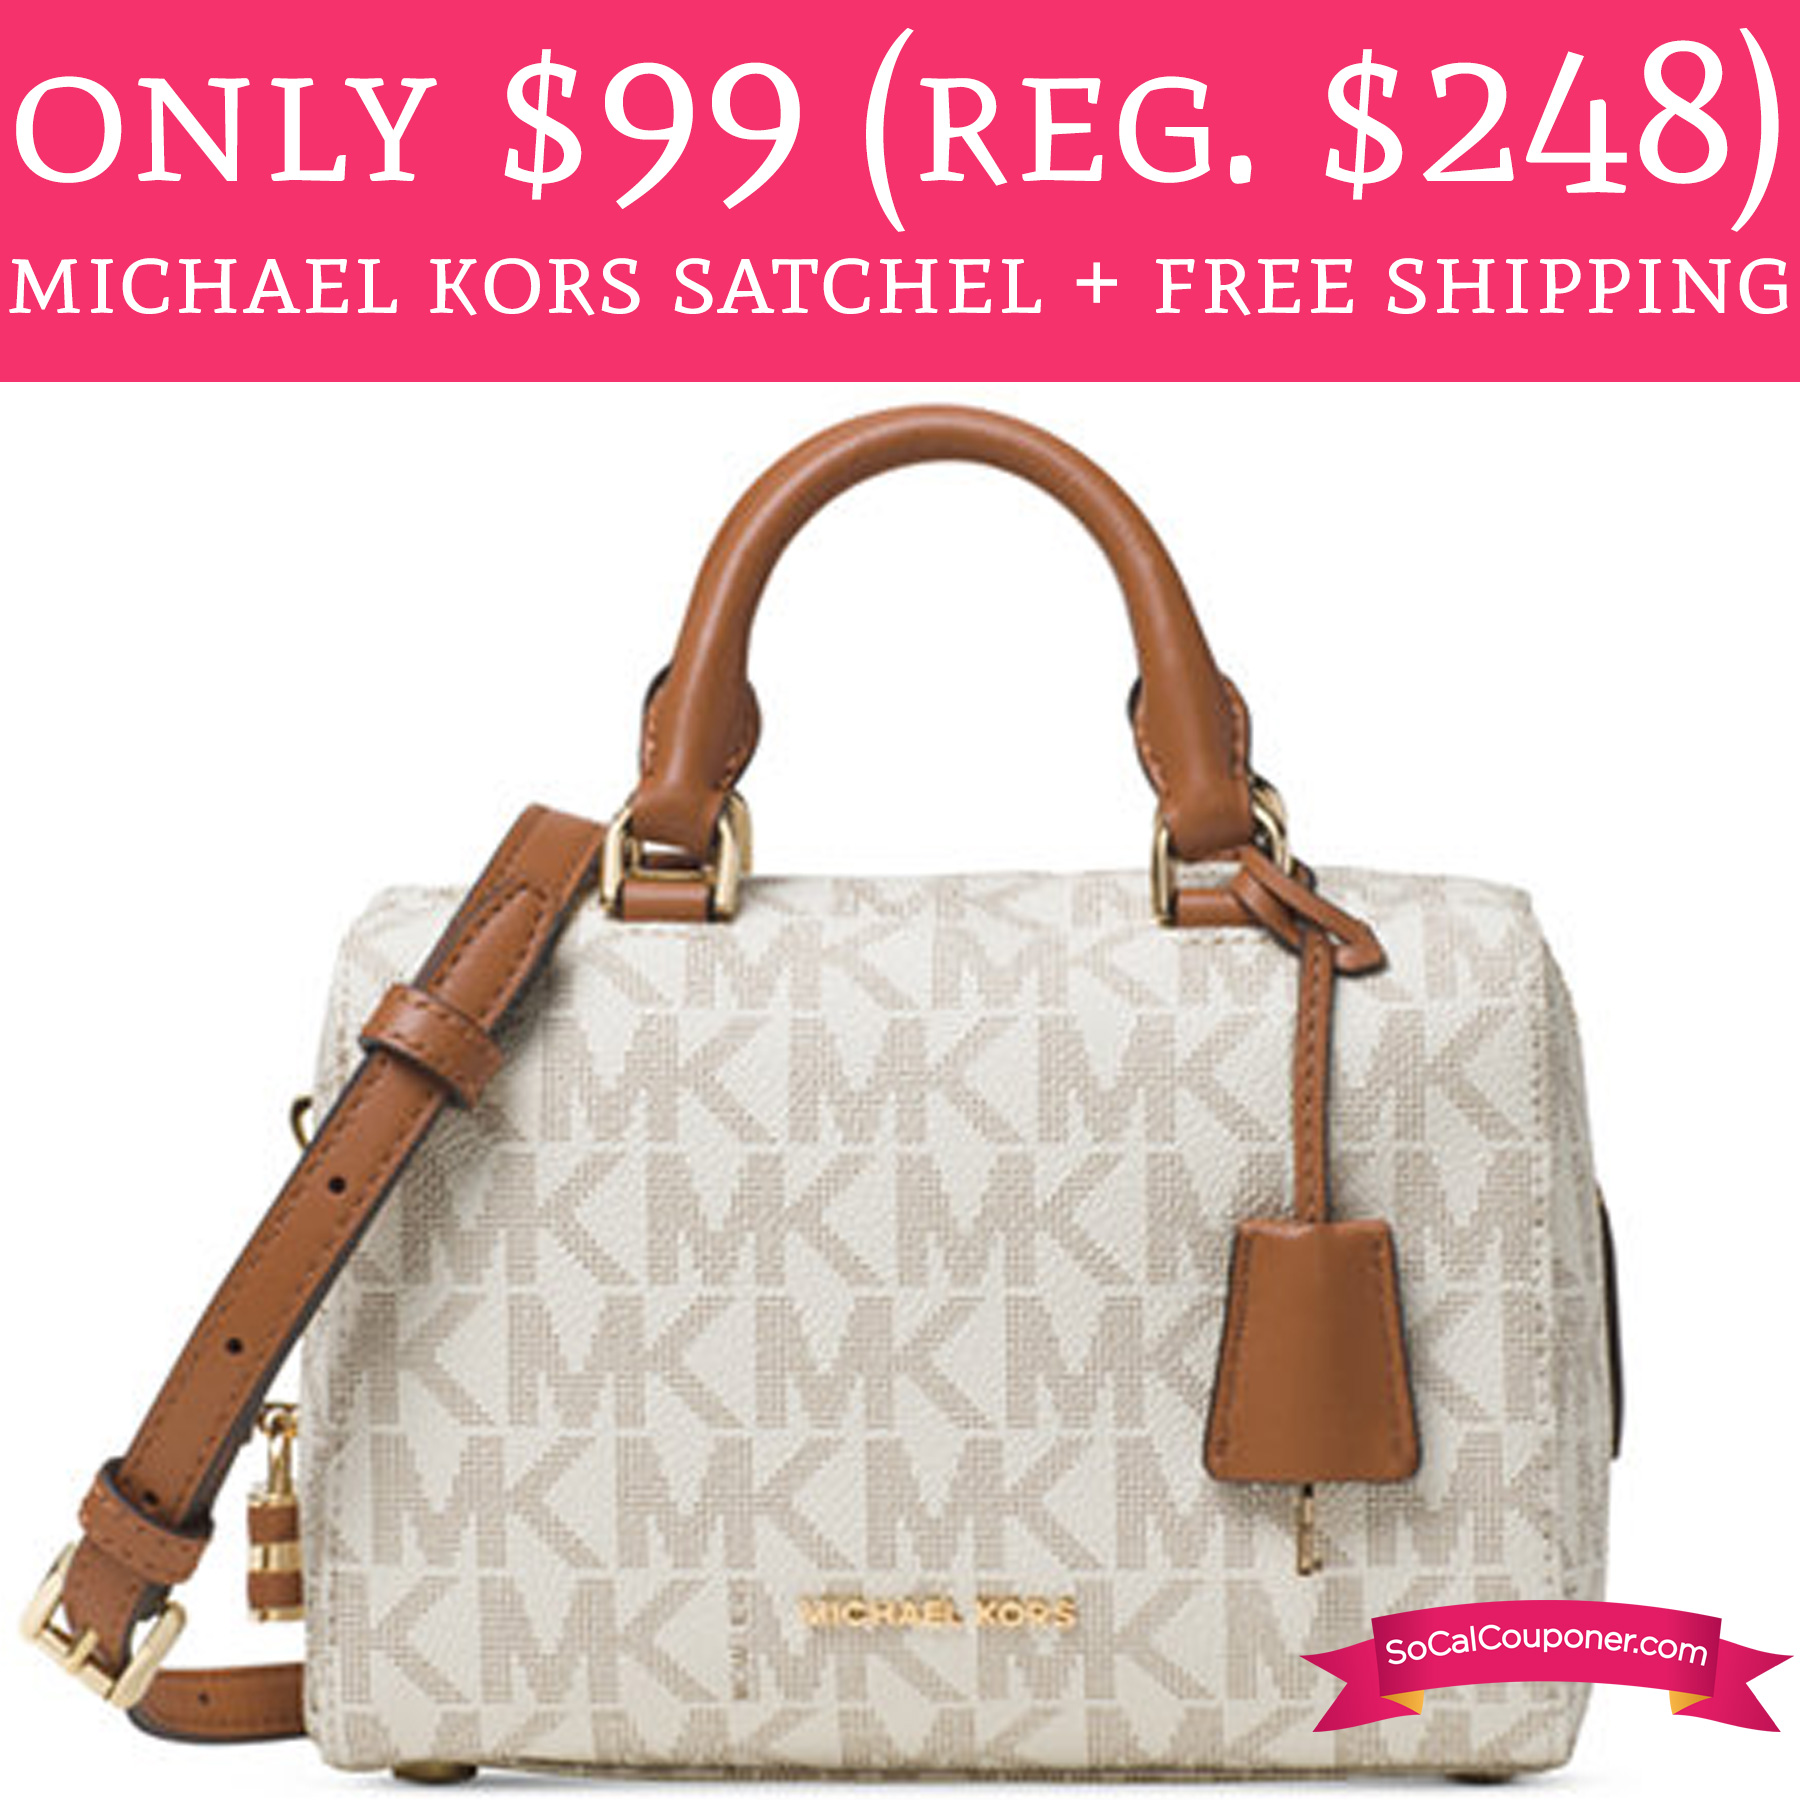 adc3a71a721f ... order only 99 regular 248 michael kors satchel free shipping deal  hunting babe bc38f 2a4cc